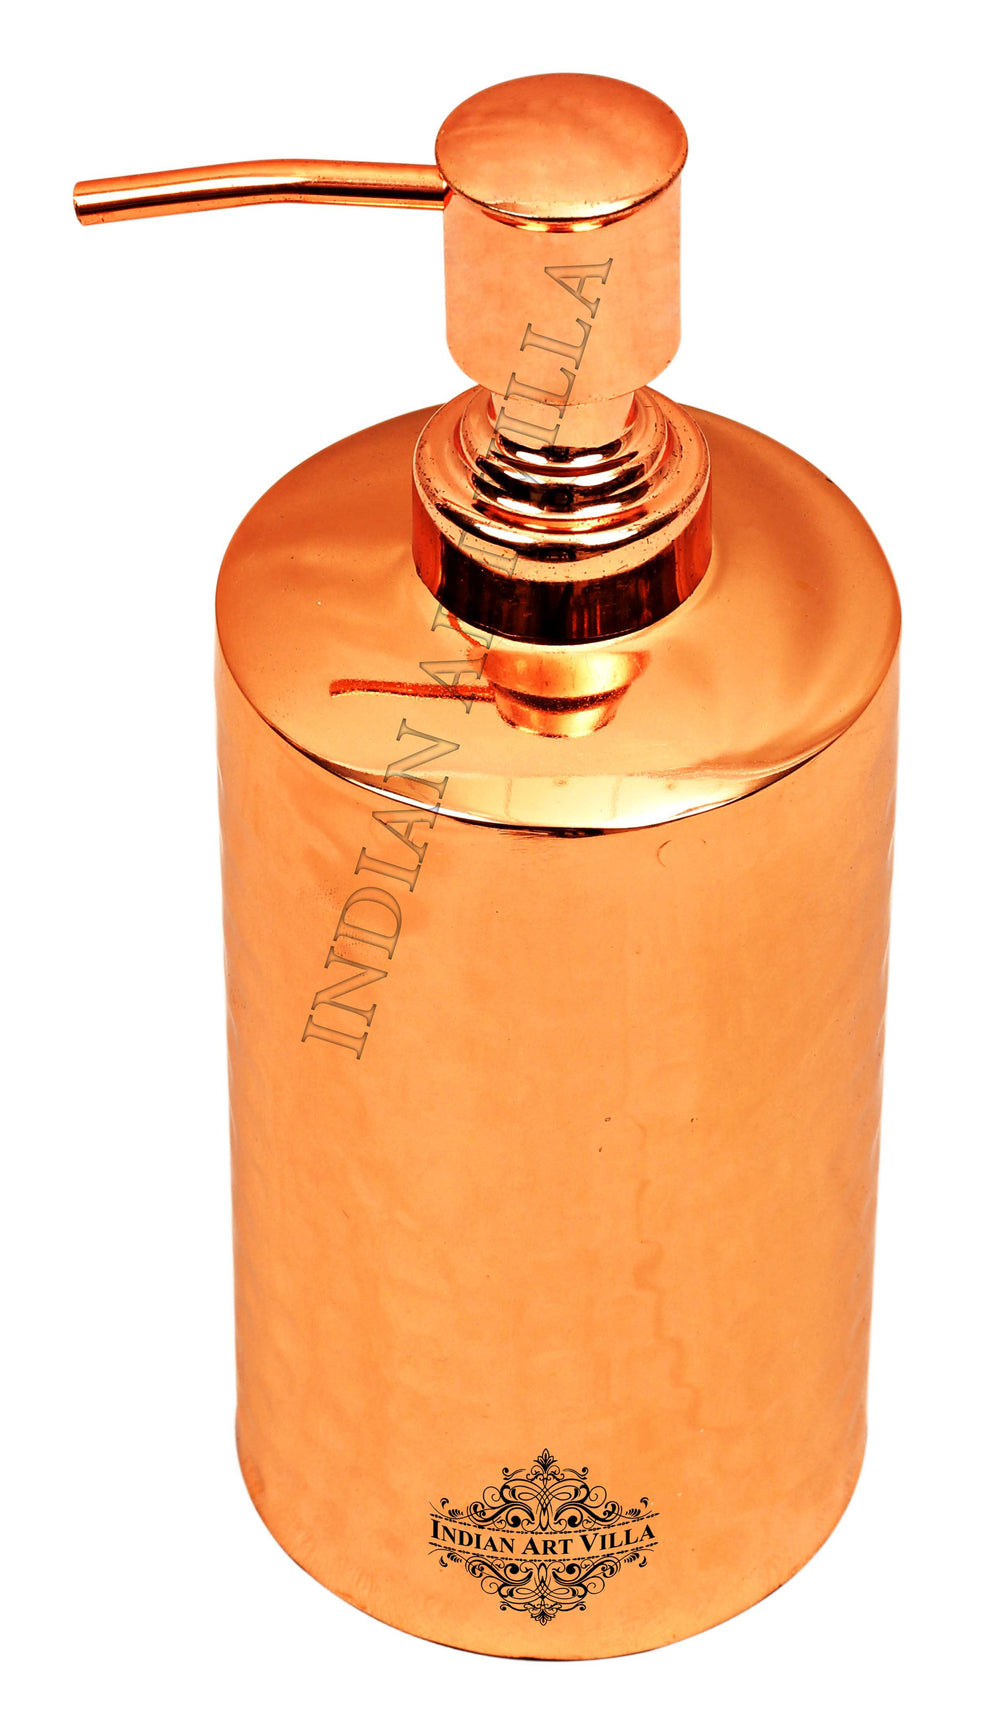 Copper Finish Hammered Round Soap Dispenser